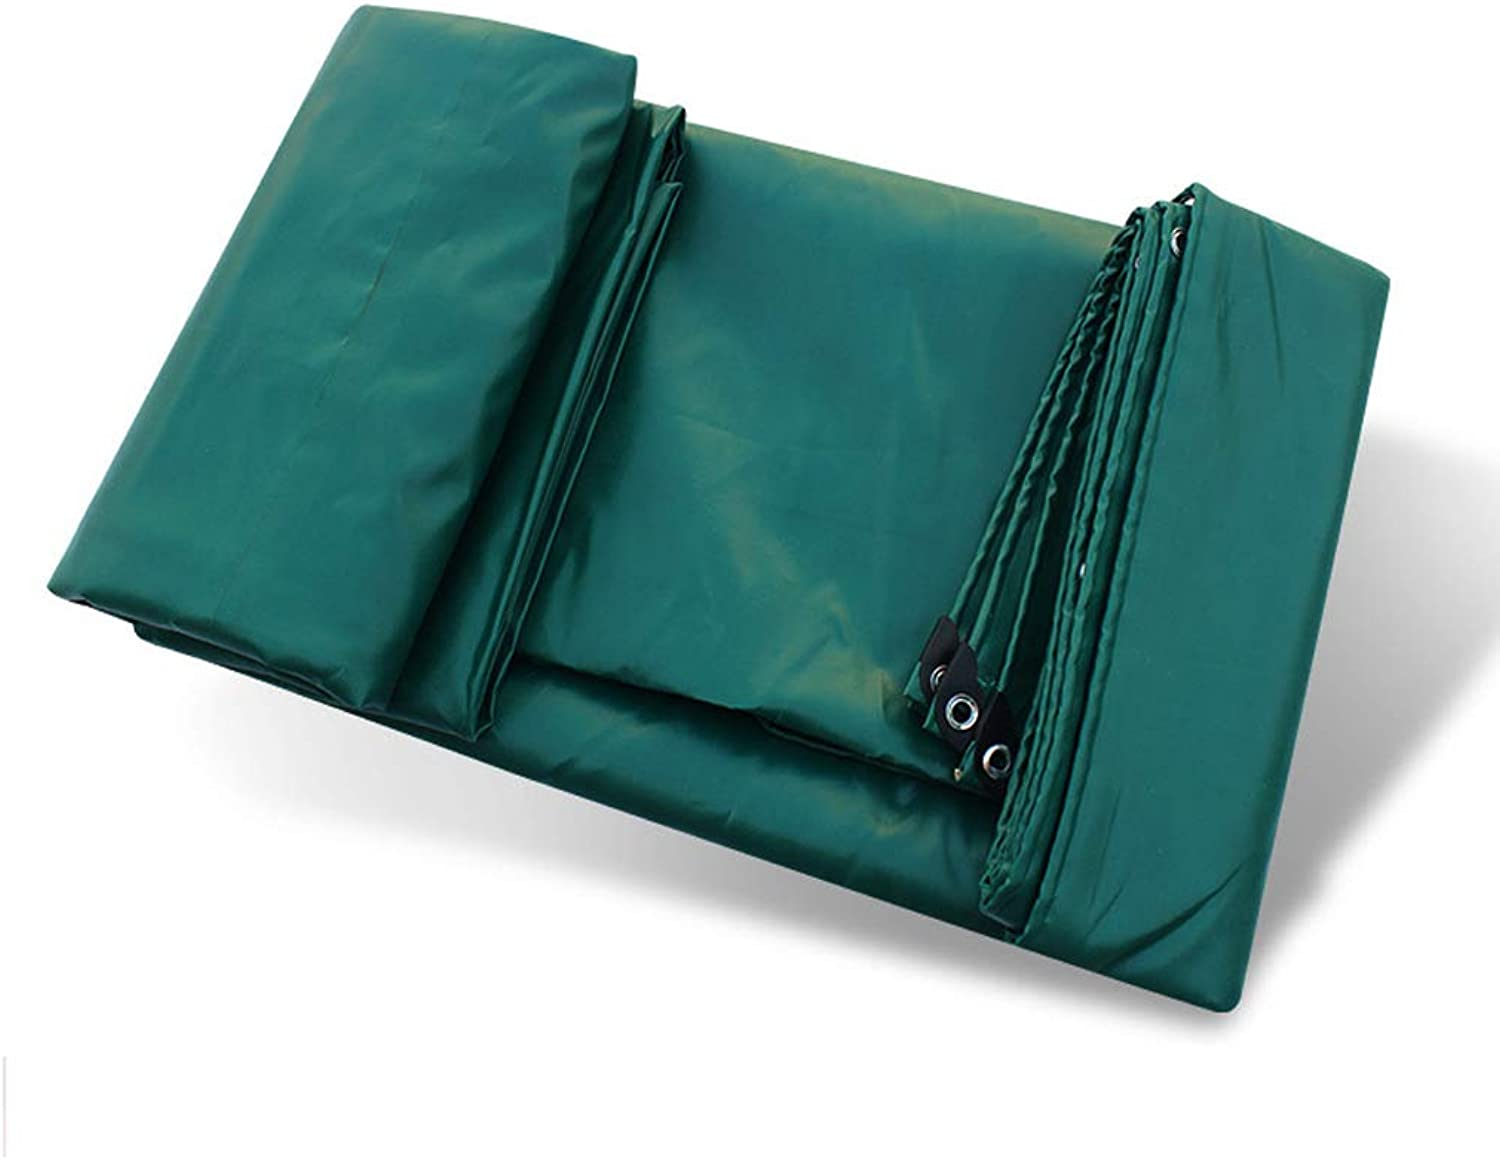 Rainproof Cloth, Thickening Dark Green PVC Tarpaulin Outdoor Waterproof Cloth Car Tarpaulin